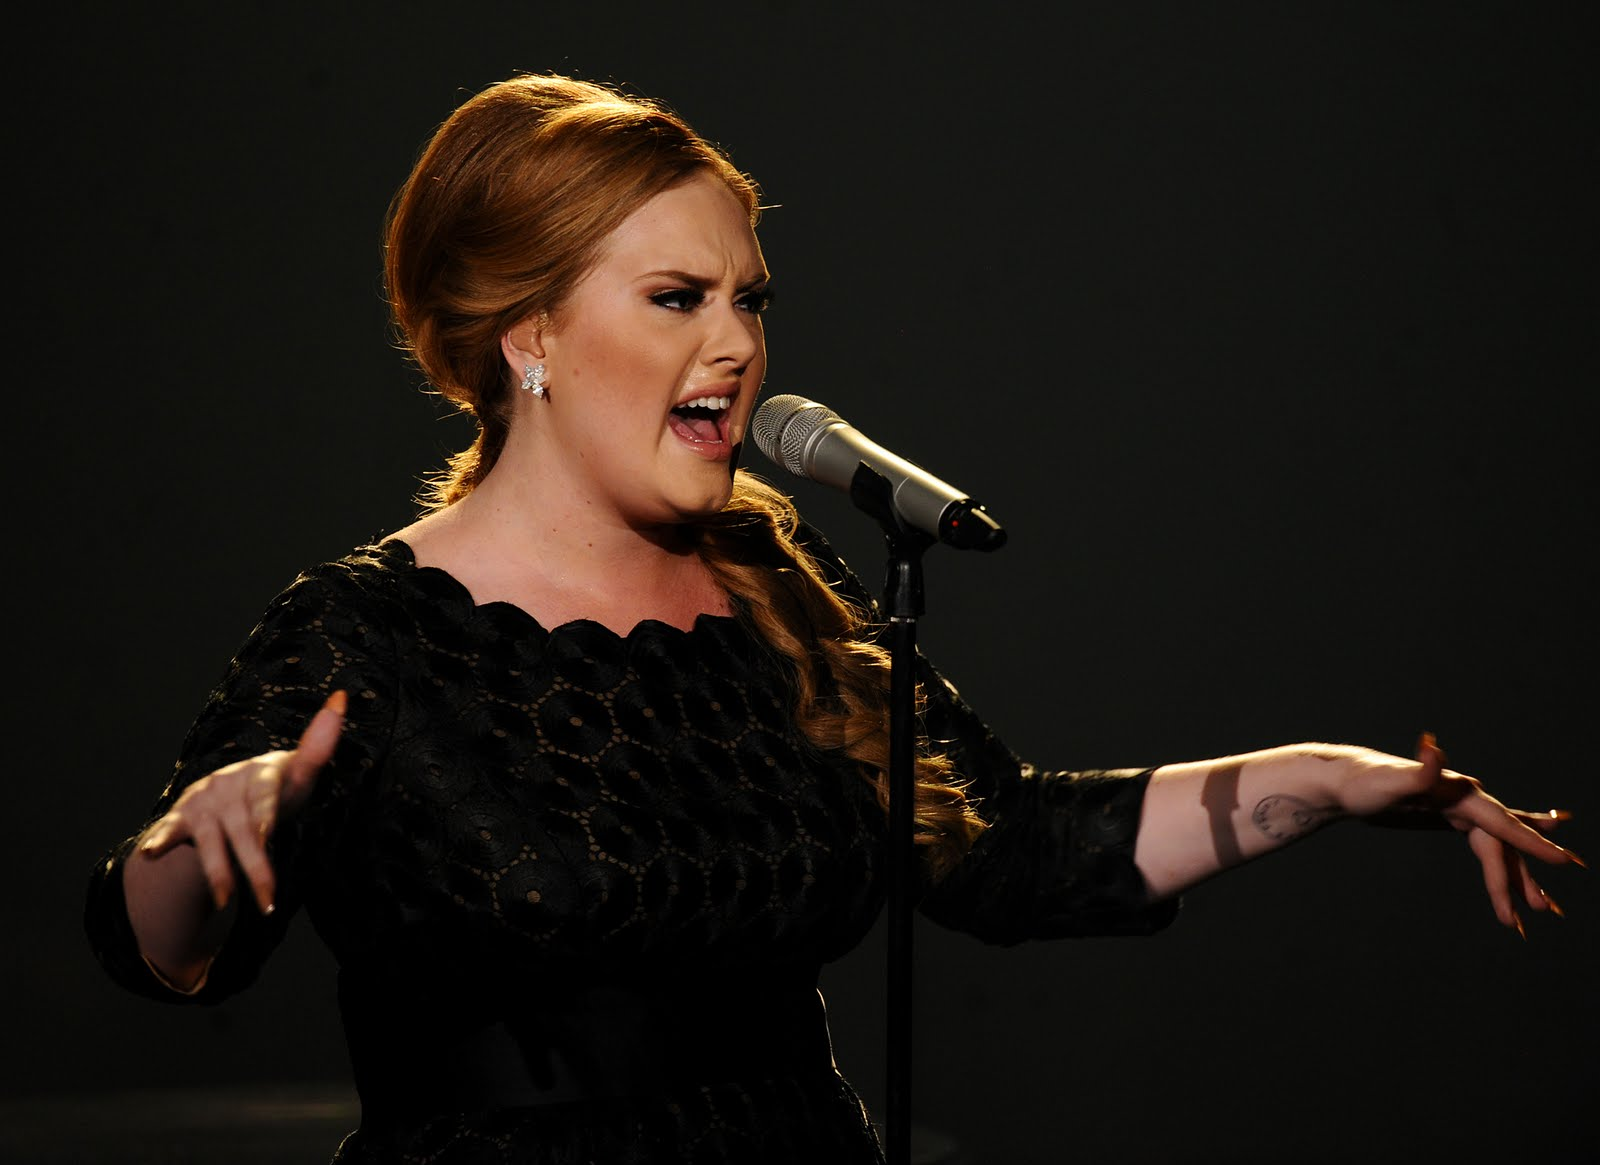 Adele to perform on the 59th annual Grammy Awards